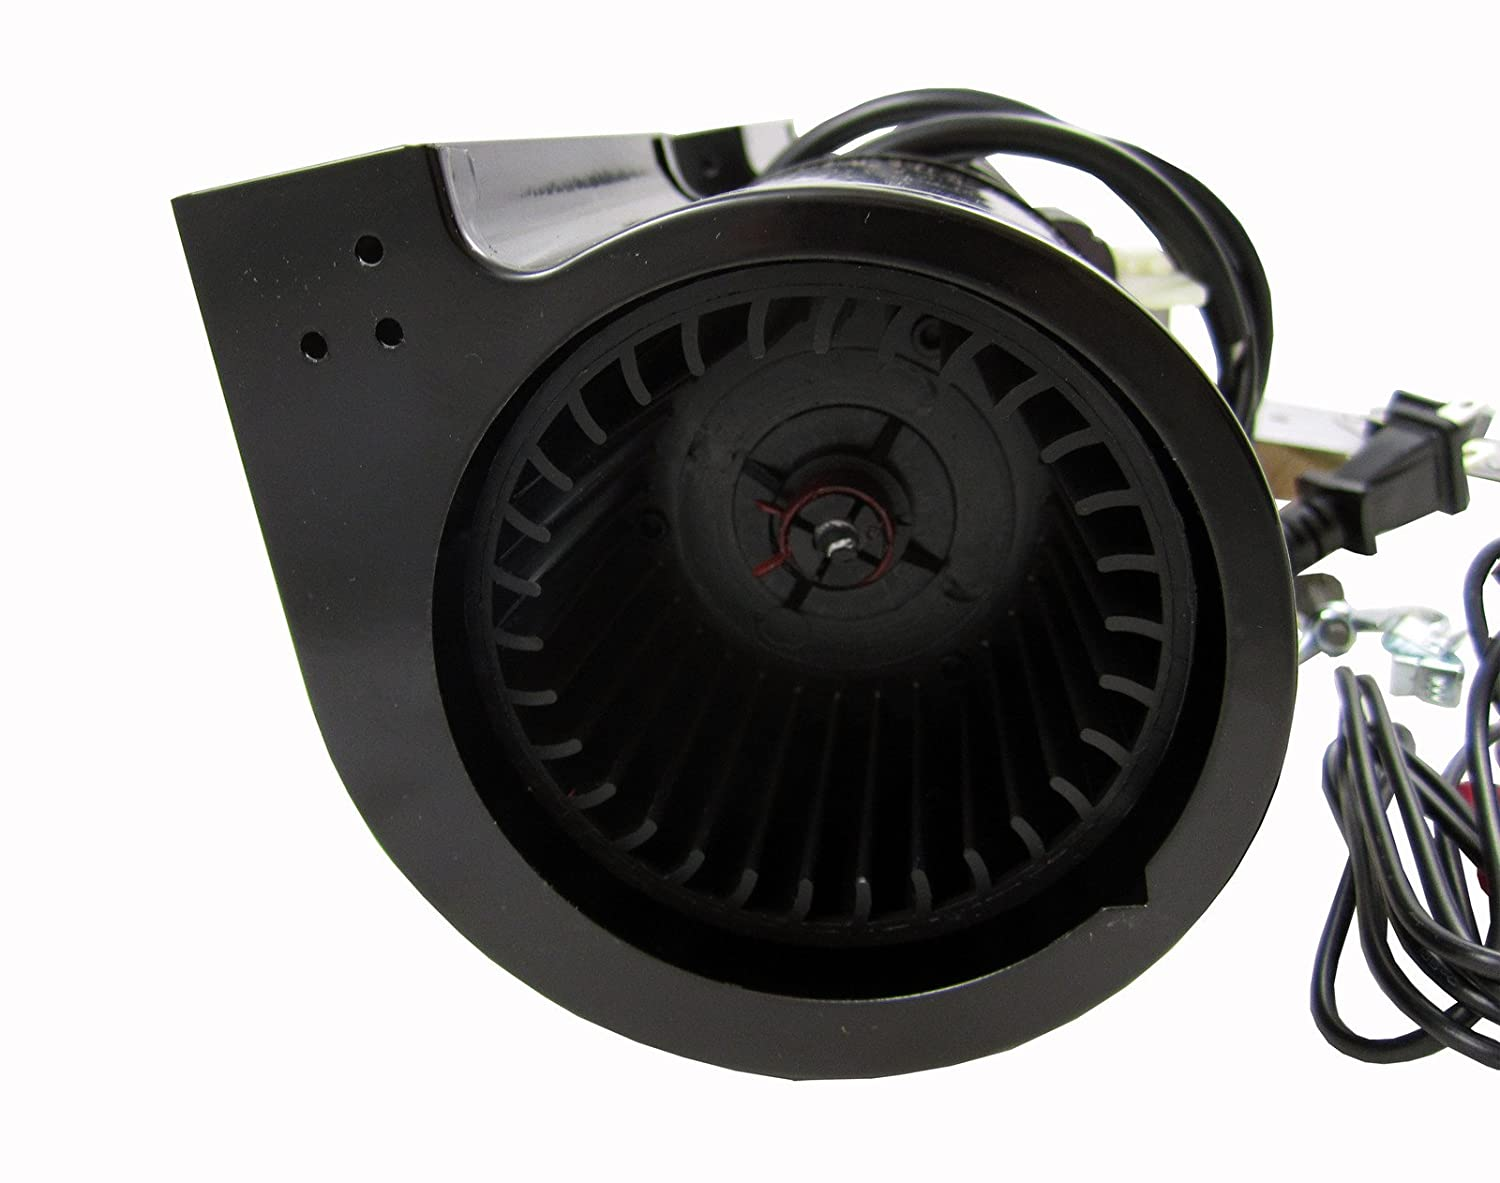 Heat-N-Glo GFK-160A Fan Kit Blower Unit 160 CFM Fan - Fireplace Skyteck Fan - Amazon.com